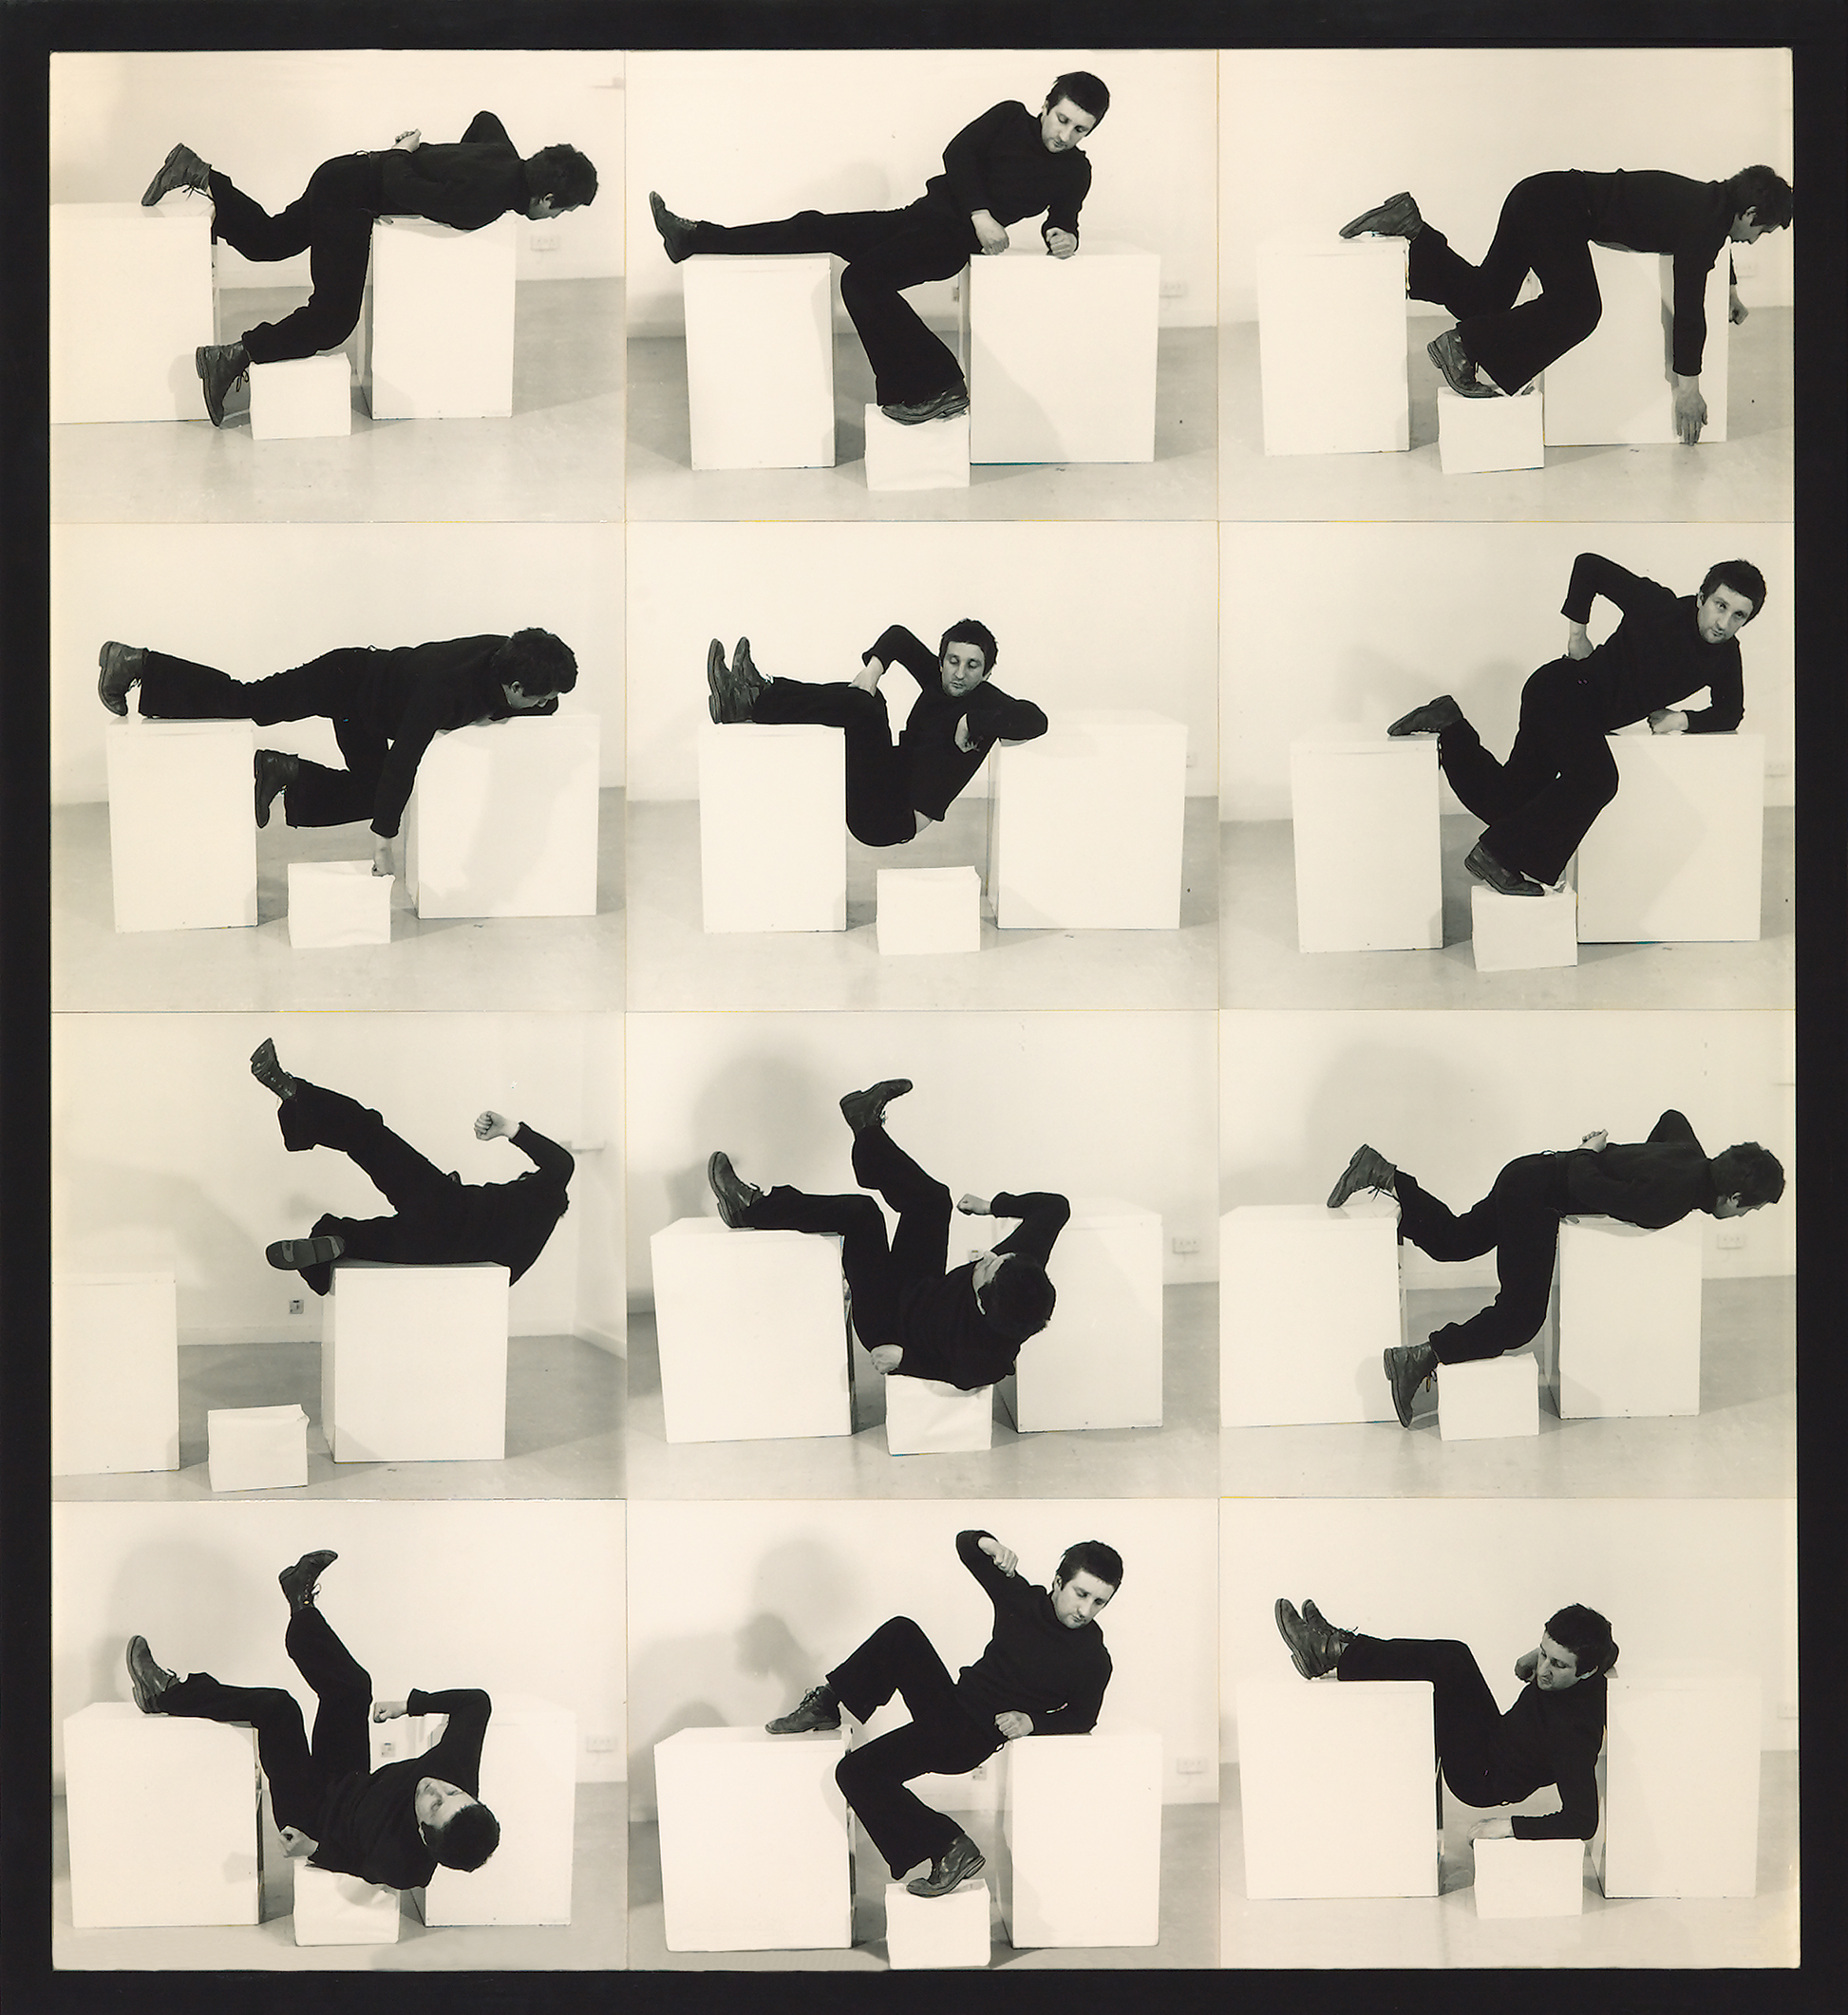 Bruce McLean, Pose Work for Plinths 3, 1971. Collection of Tate. Purchased 1981. © Bruce McLean. Courtesy of Tanya Leighton Gallery (Berlin) and Tate Britain.